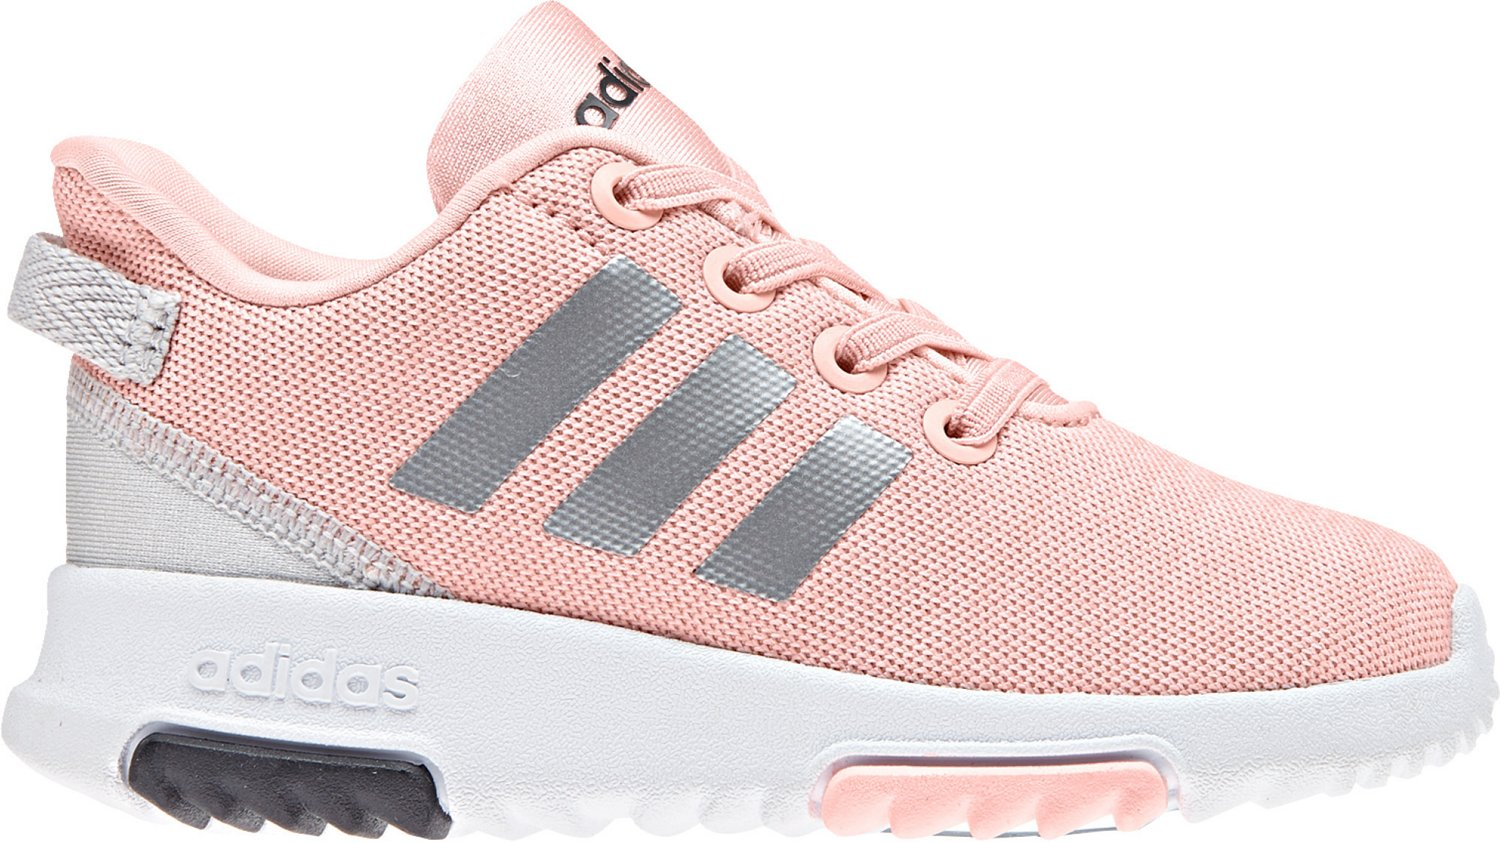 adidas Toddler Girls' Racer TR Running Shoes - view number 3